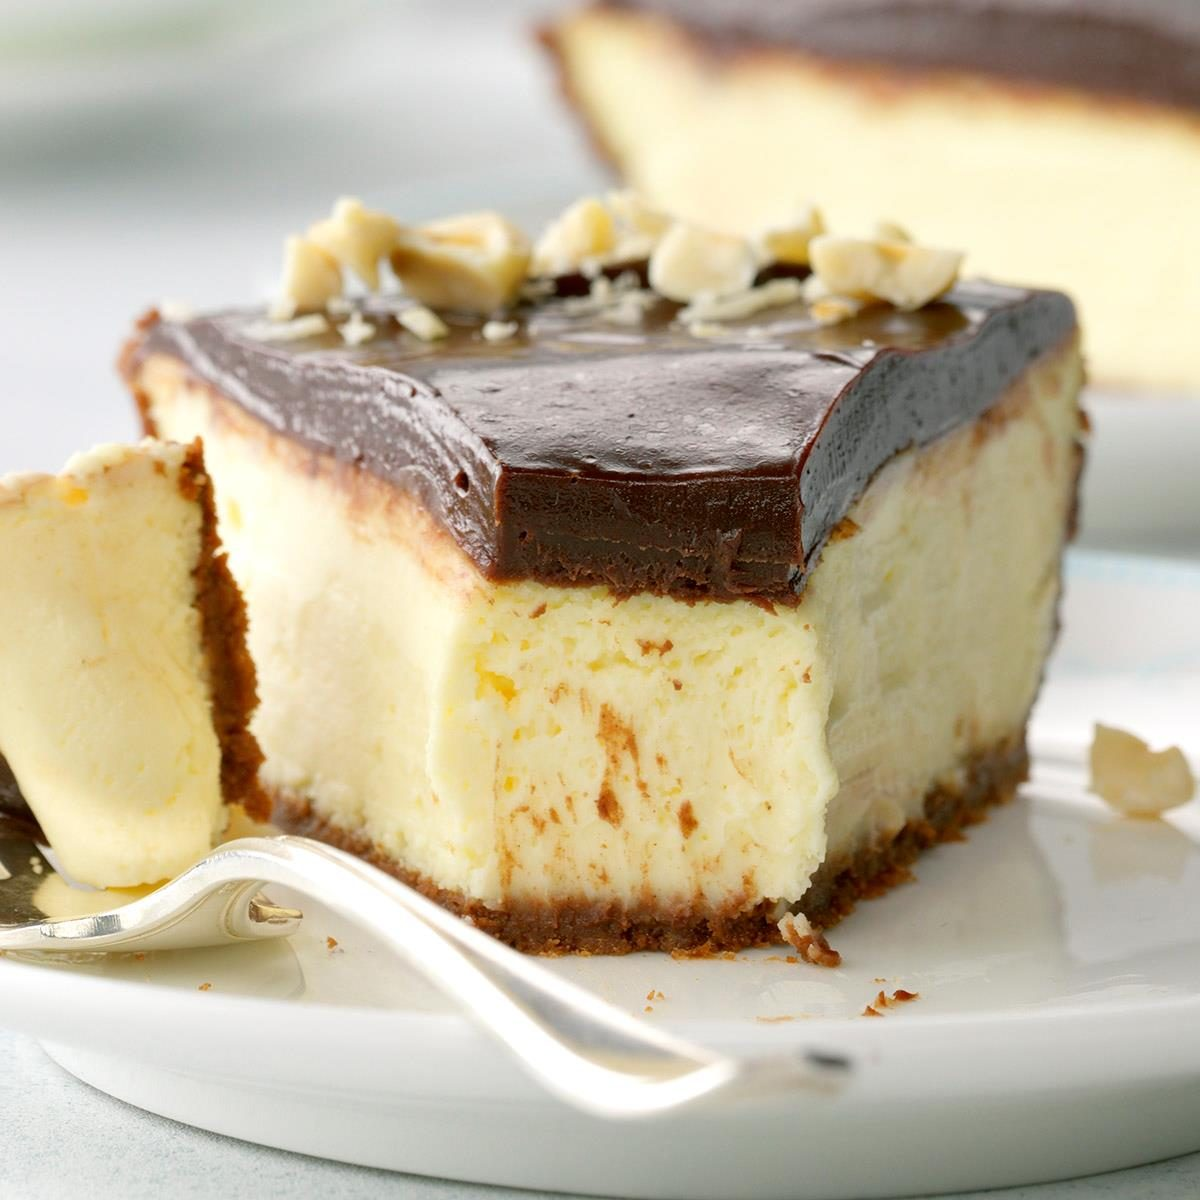 Italy: Chocolate-Hazelnut Cheesecake Pie